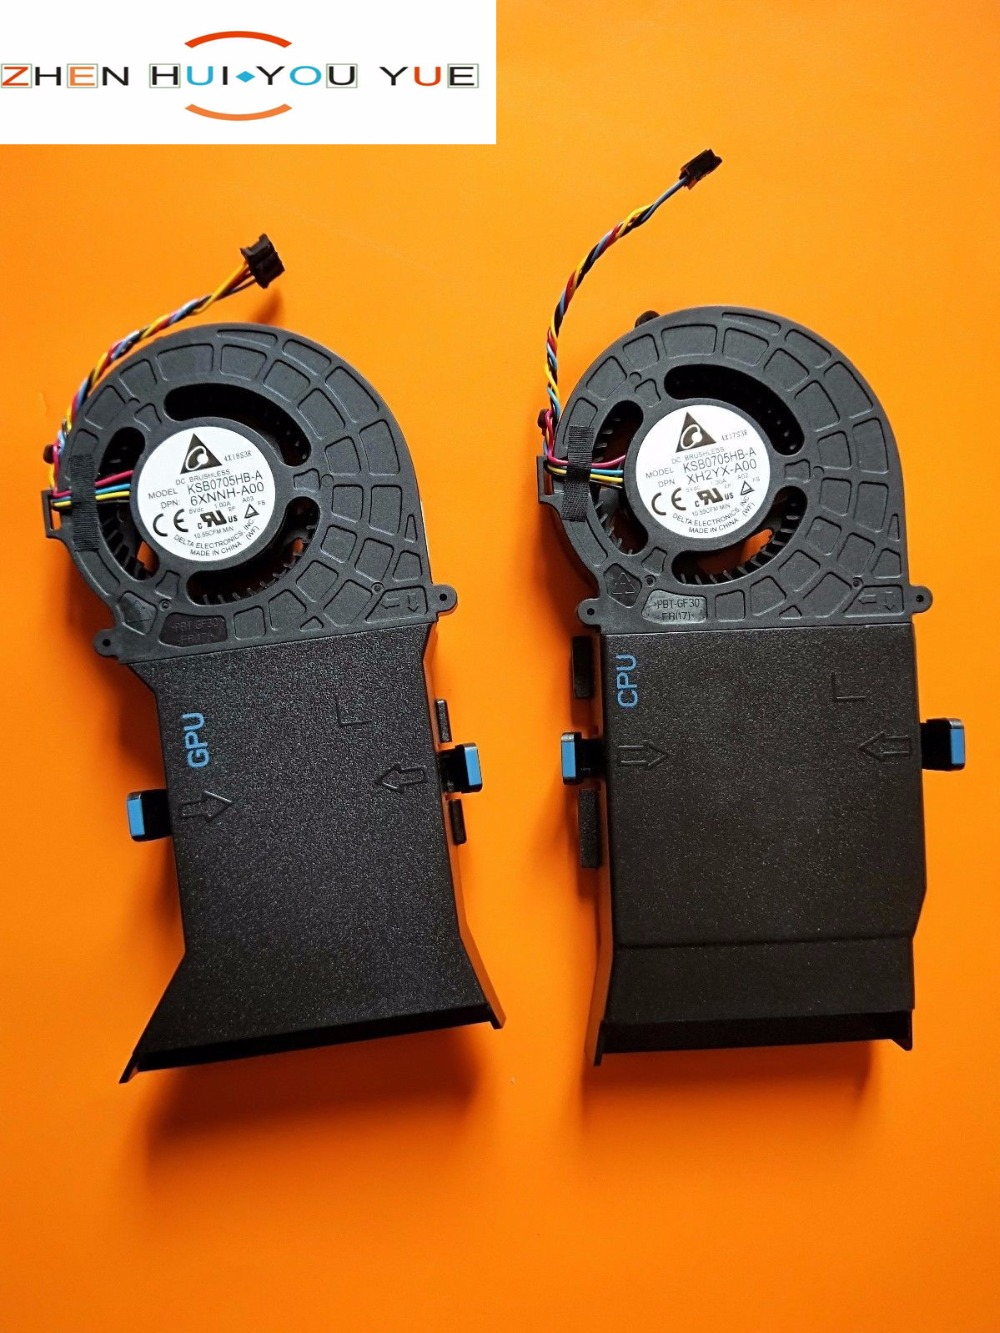 NEW CPU+GPU COOLING FAN 6XNNH A00 XH2YX A00 FOR Dell Alienware Alwar 2508 Alpha seires-in Laptop